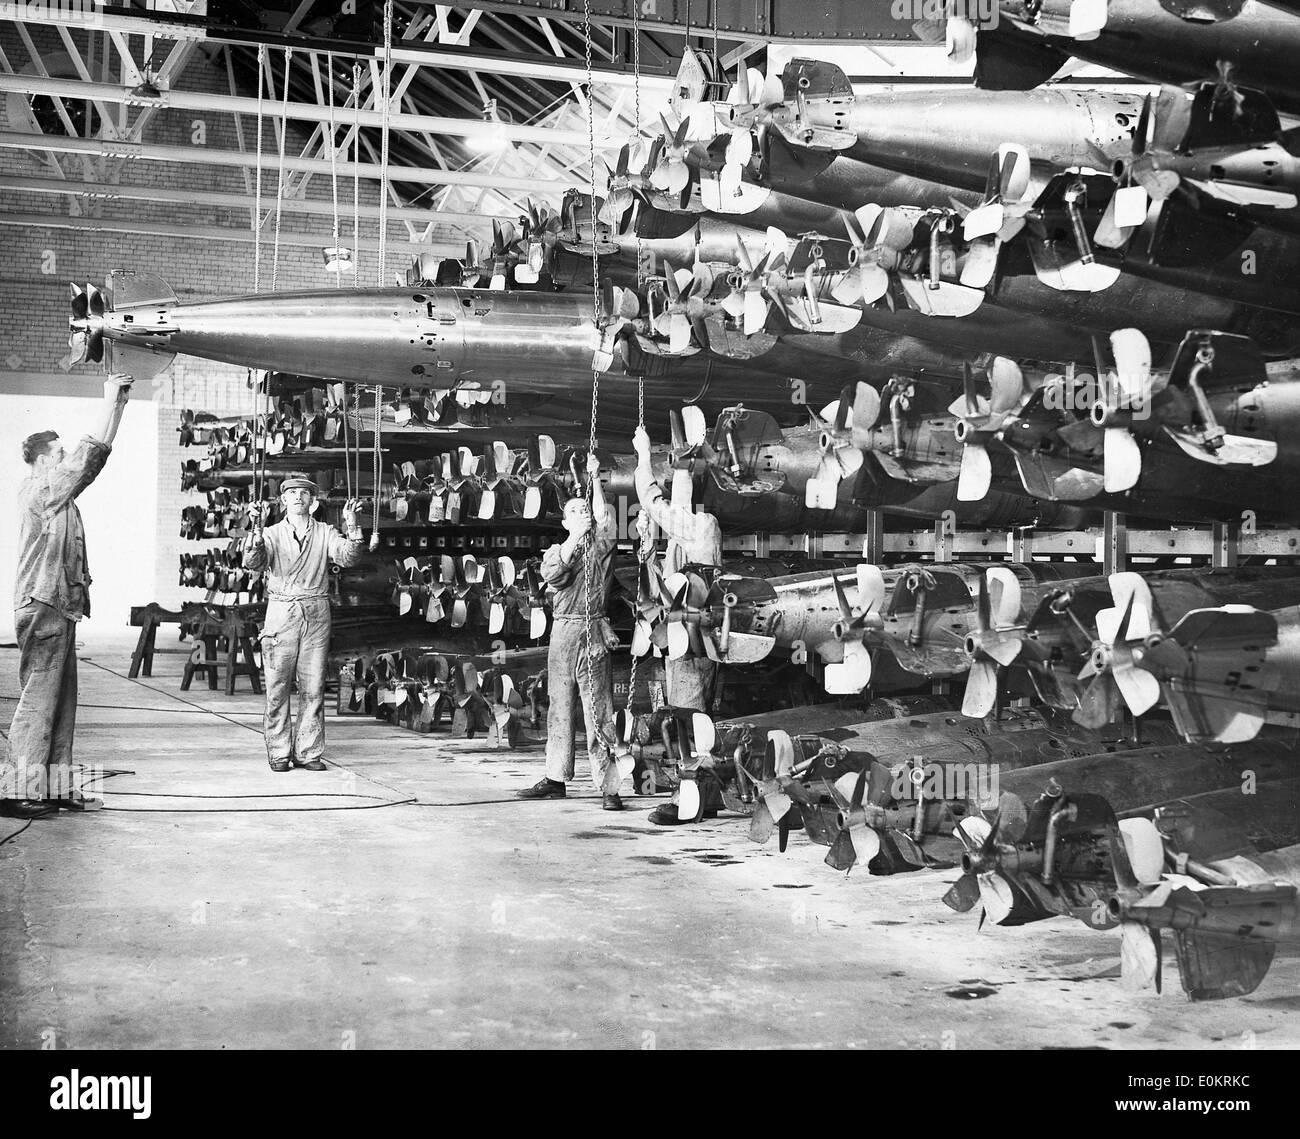 Torpedoes to be tested before dispatched to Royal Navy - Stock Image